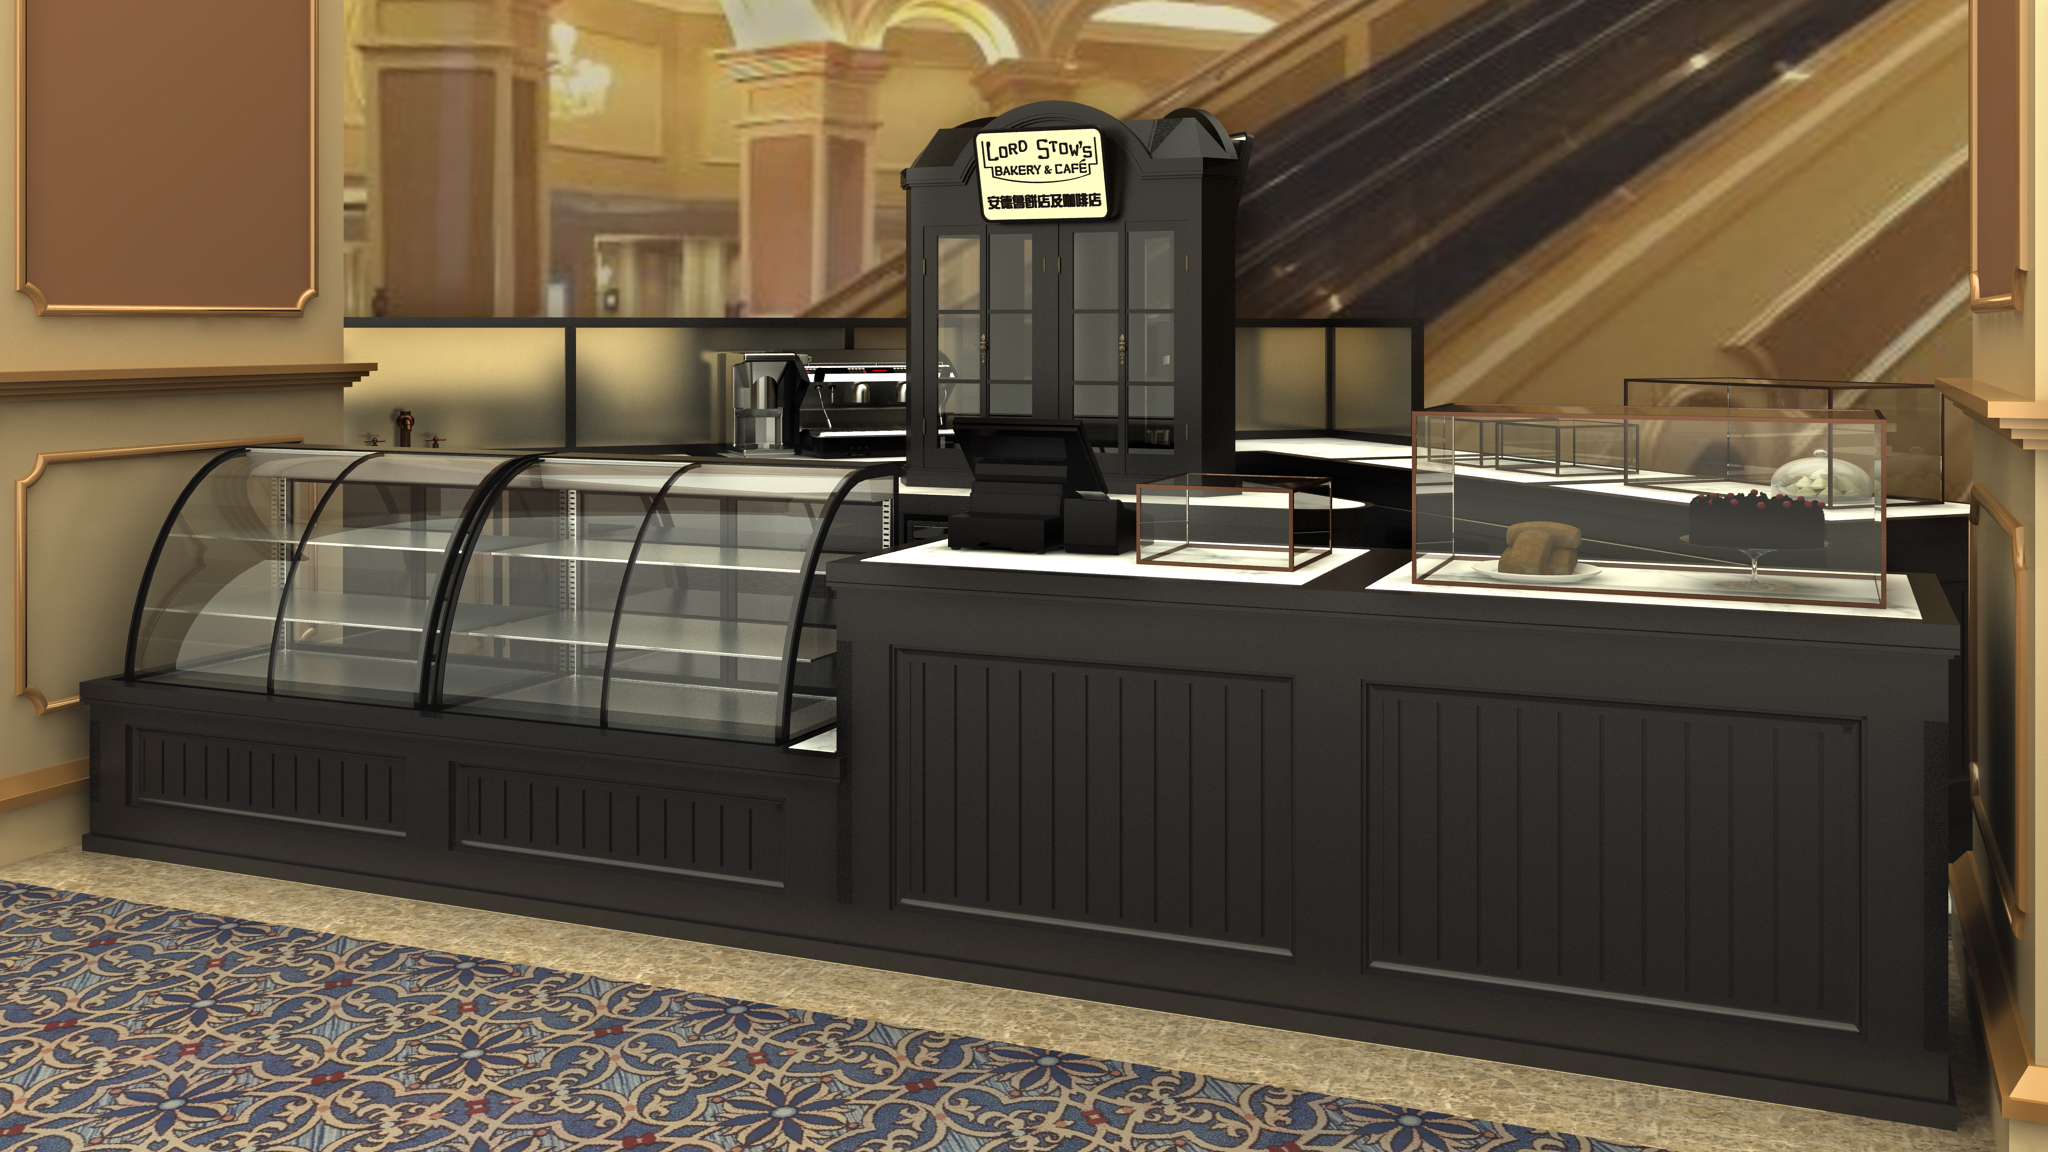 Lord Stow´s Bakery and Cafe Kiosk – KPM Project Management